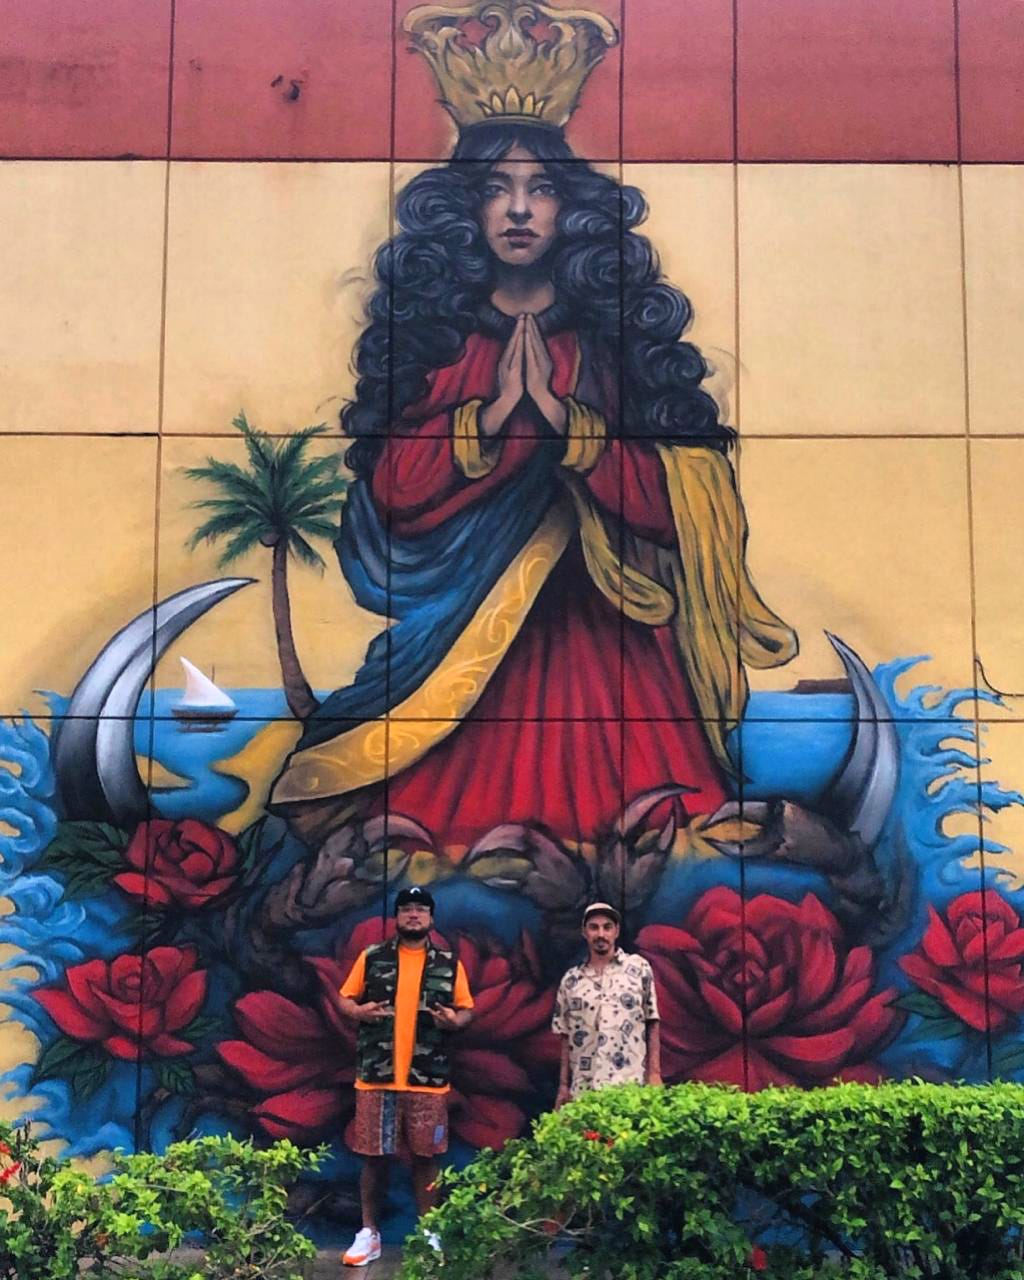 Crowns CEO Randy Alcantara commissioned artist Kenny Malone to paint the mural of Santa Maria Kamalen on an exterior section of Ada Plaza Center in Hagåtña.